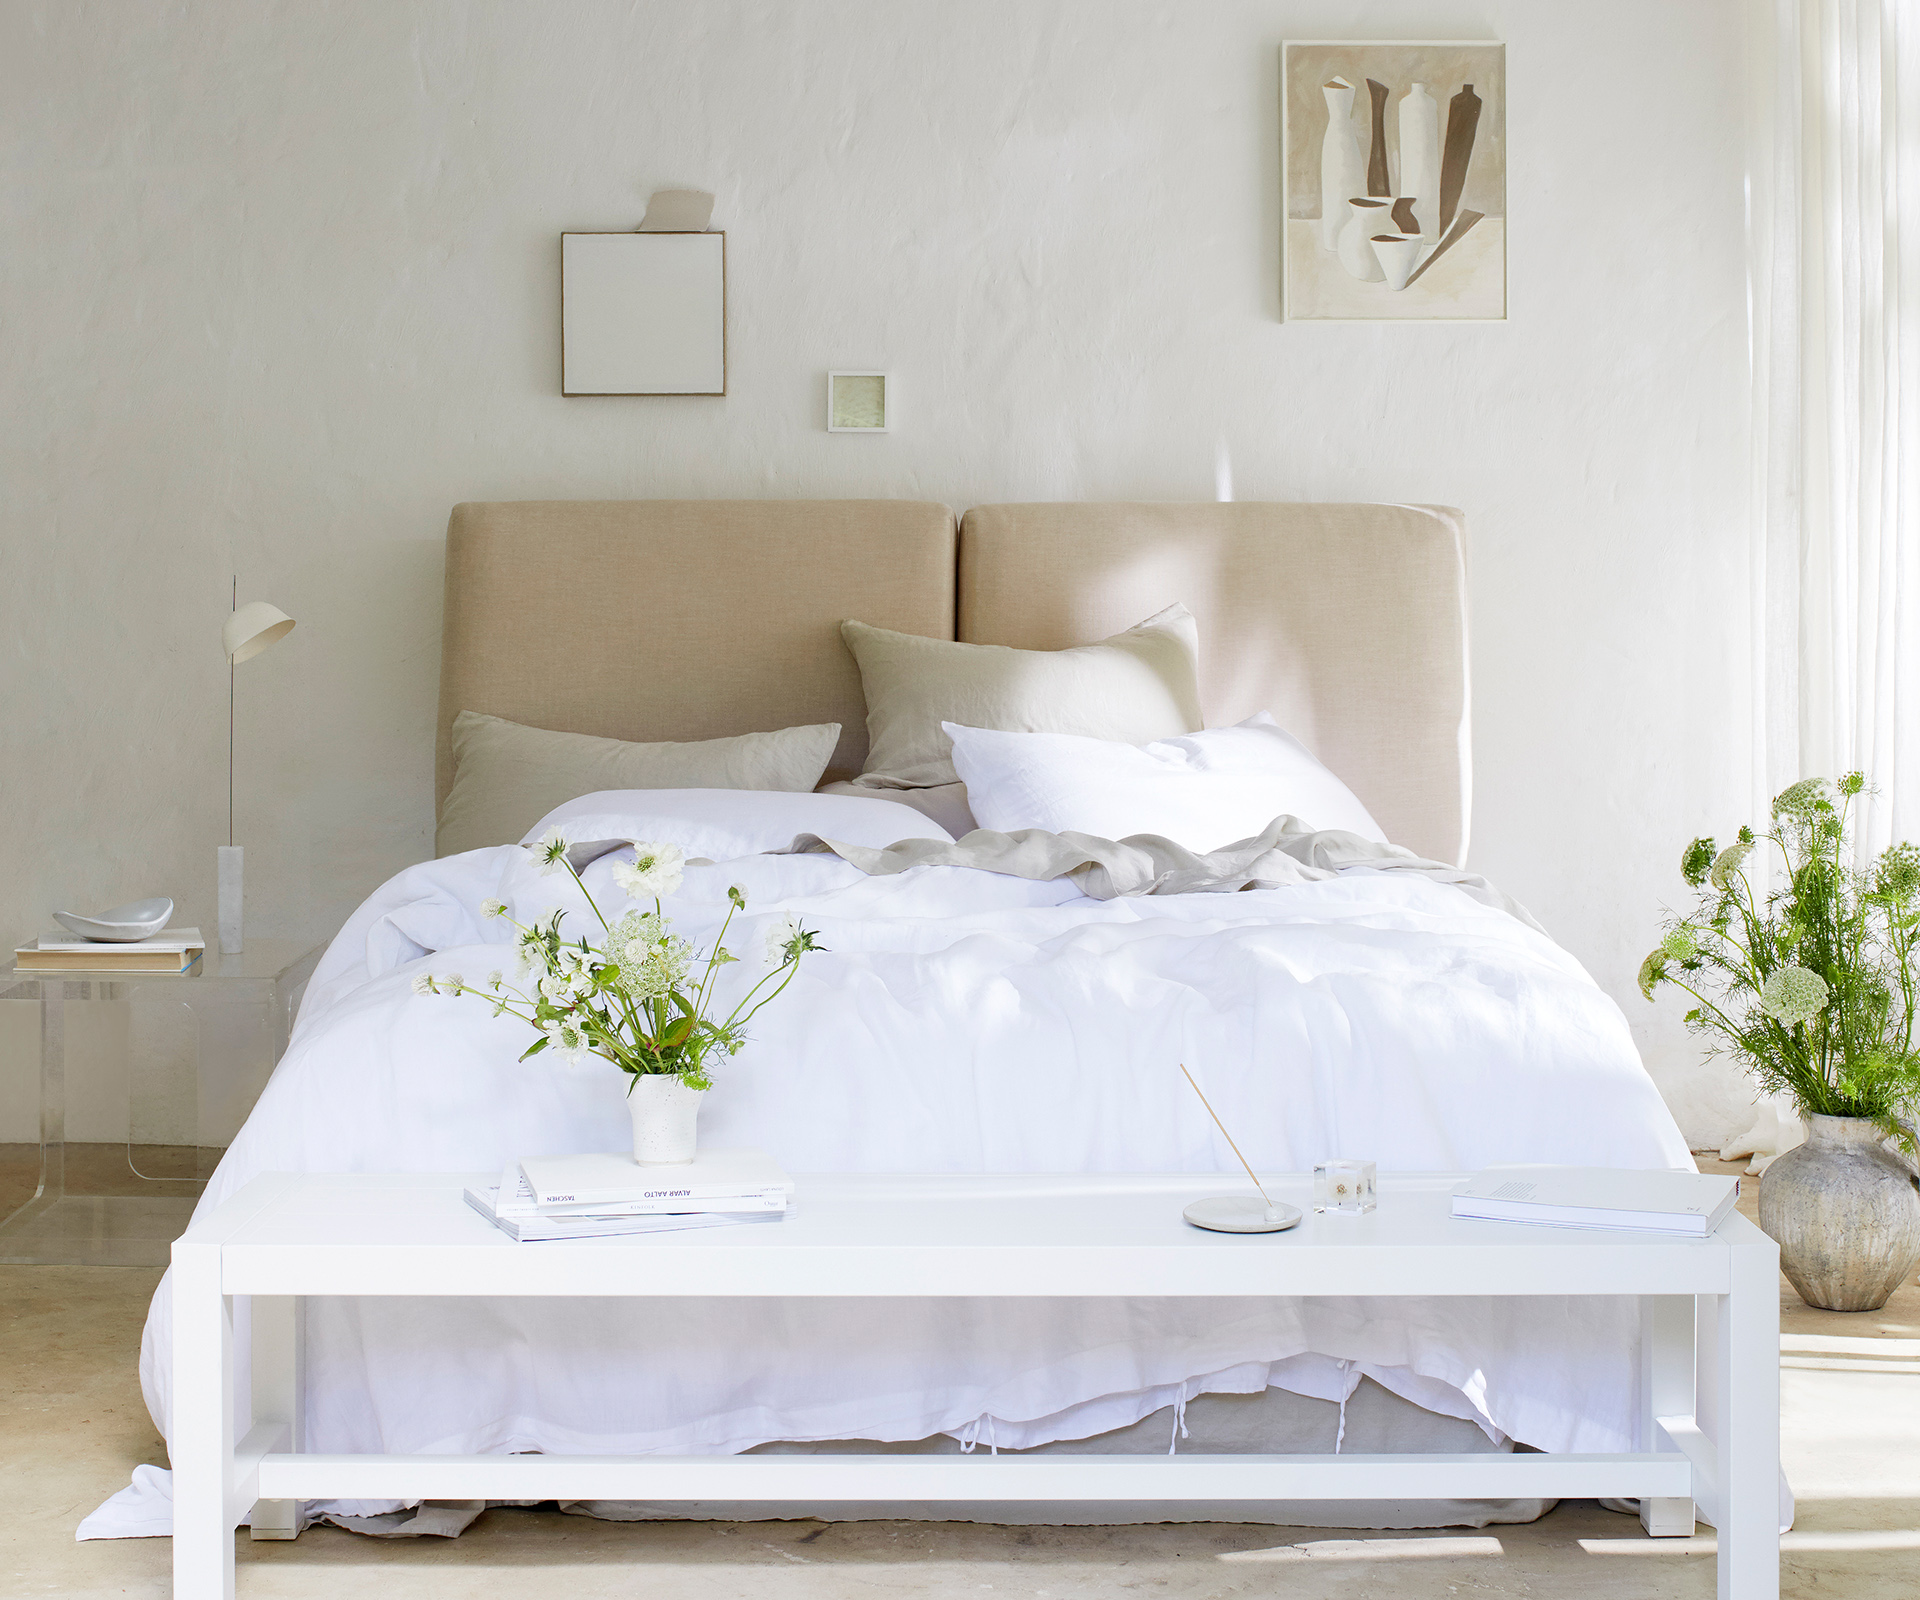 20 natural & neutral homewares with timeless appeal | real living